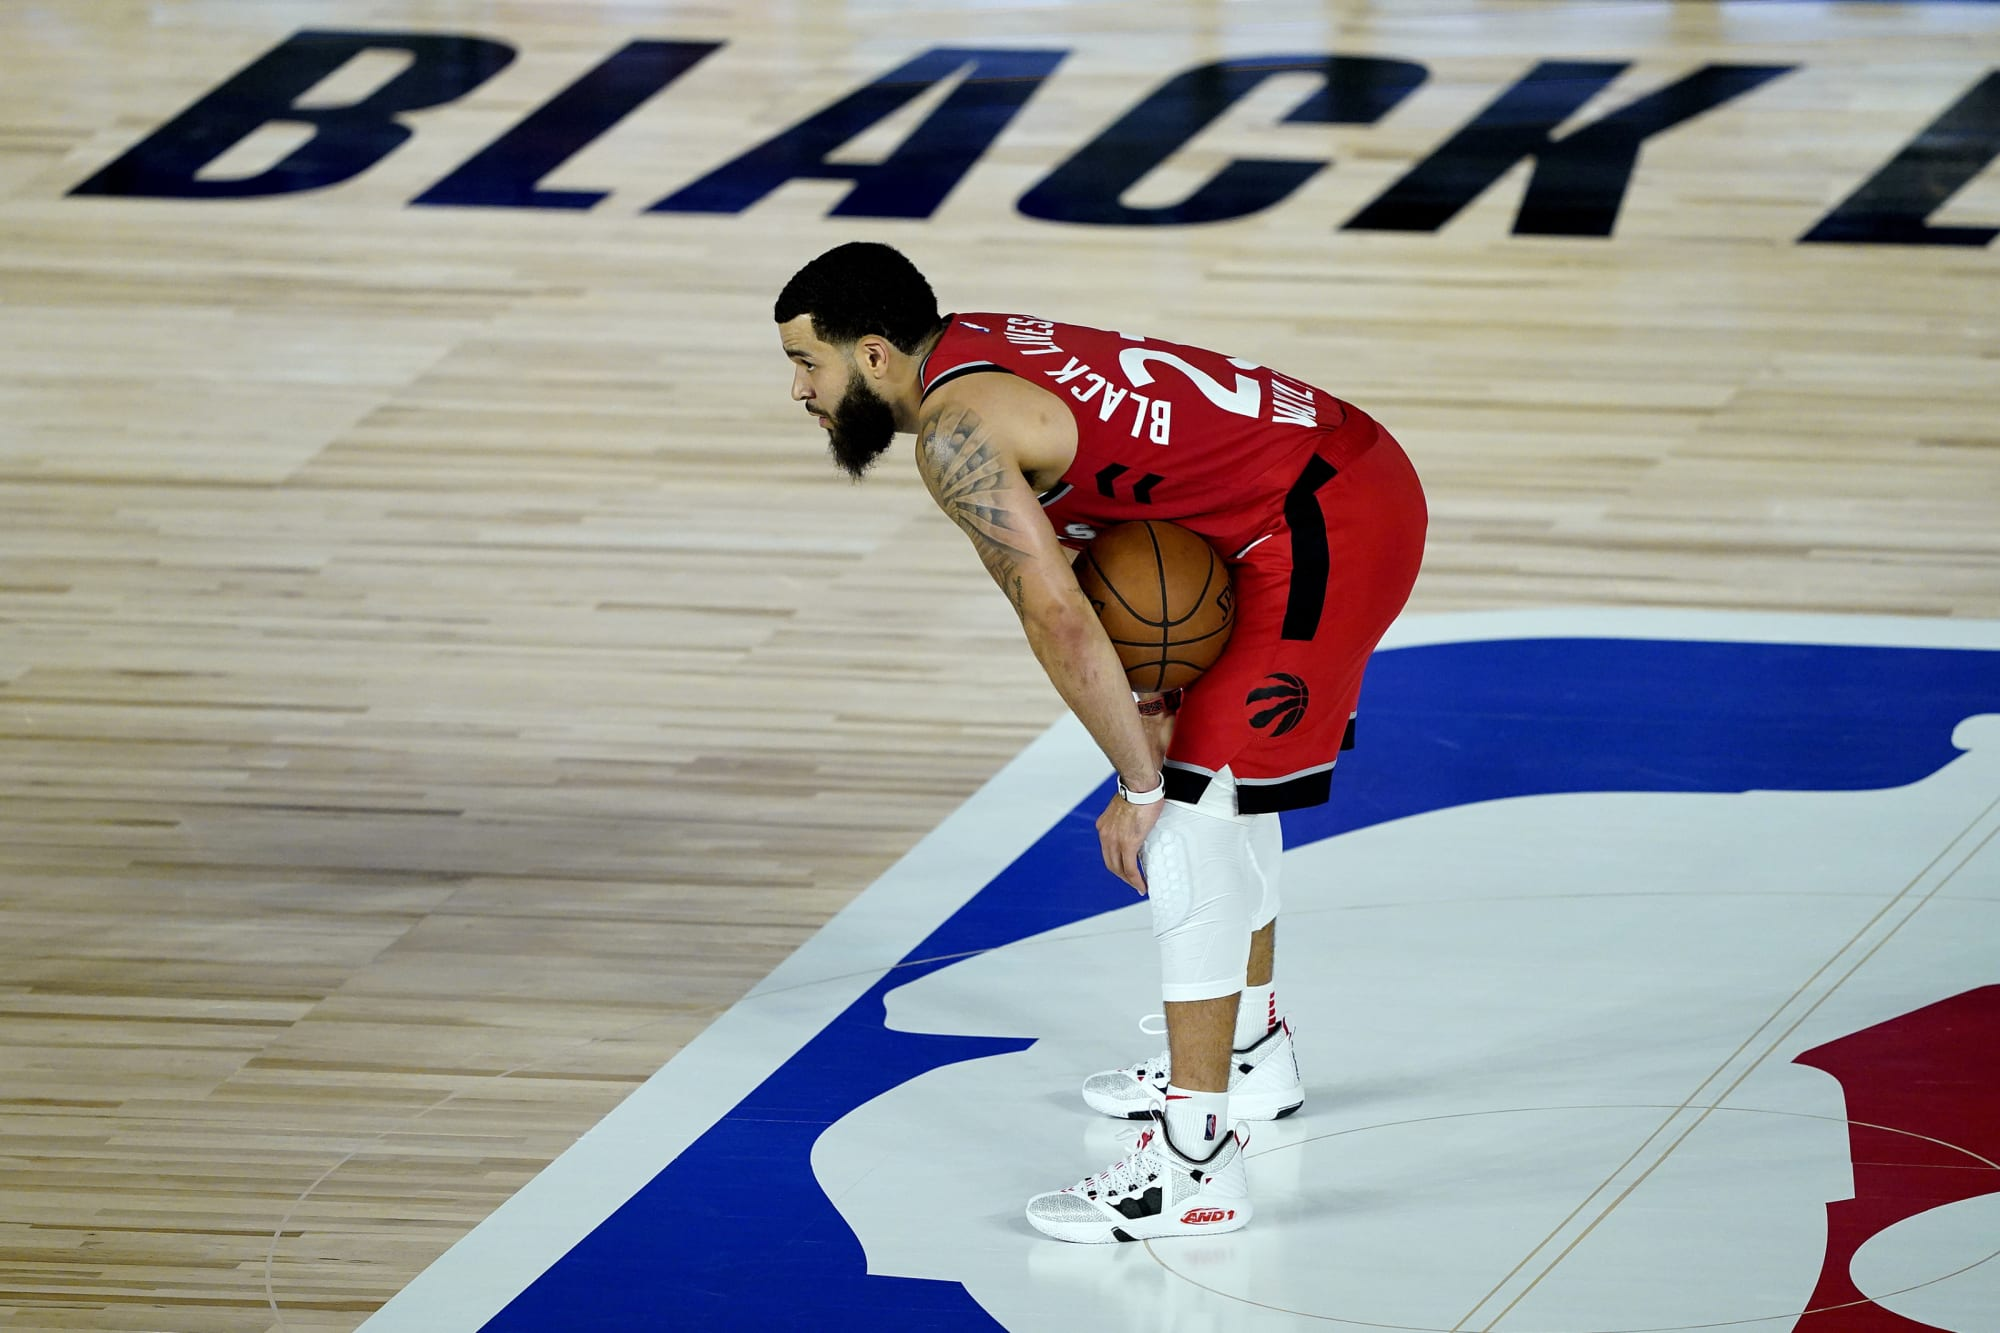 Toronto Raptors: A realistic expectation for Fred VanVleet this season